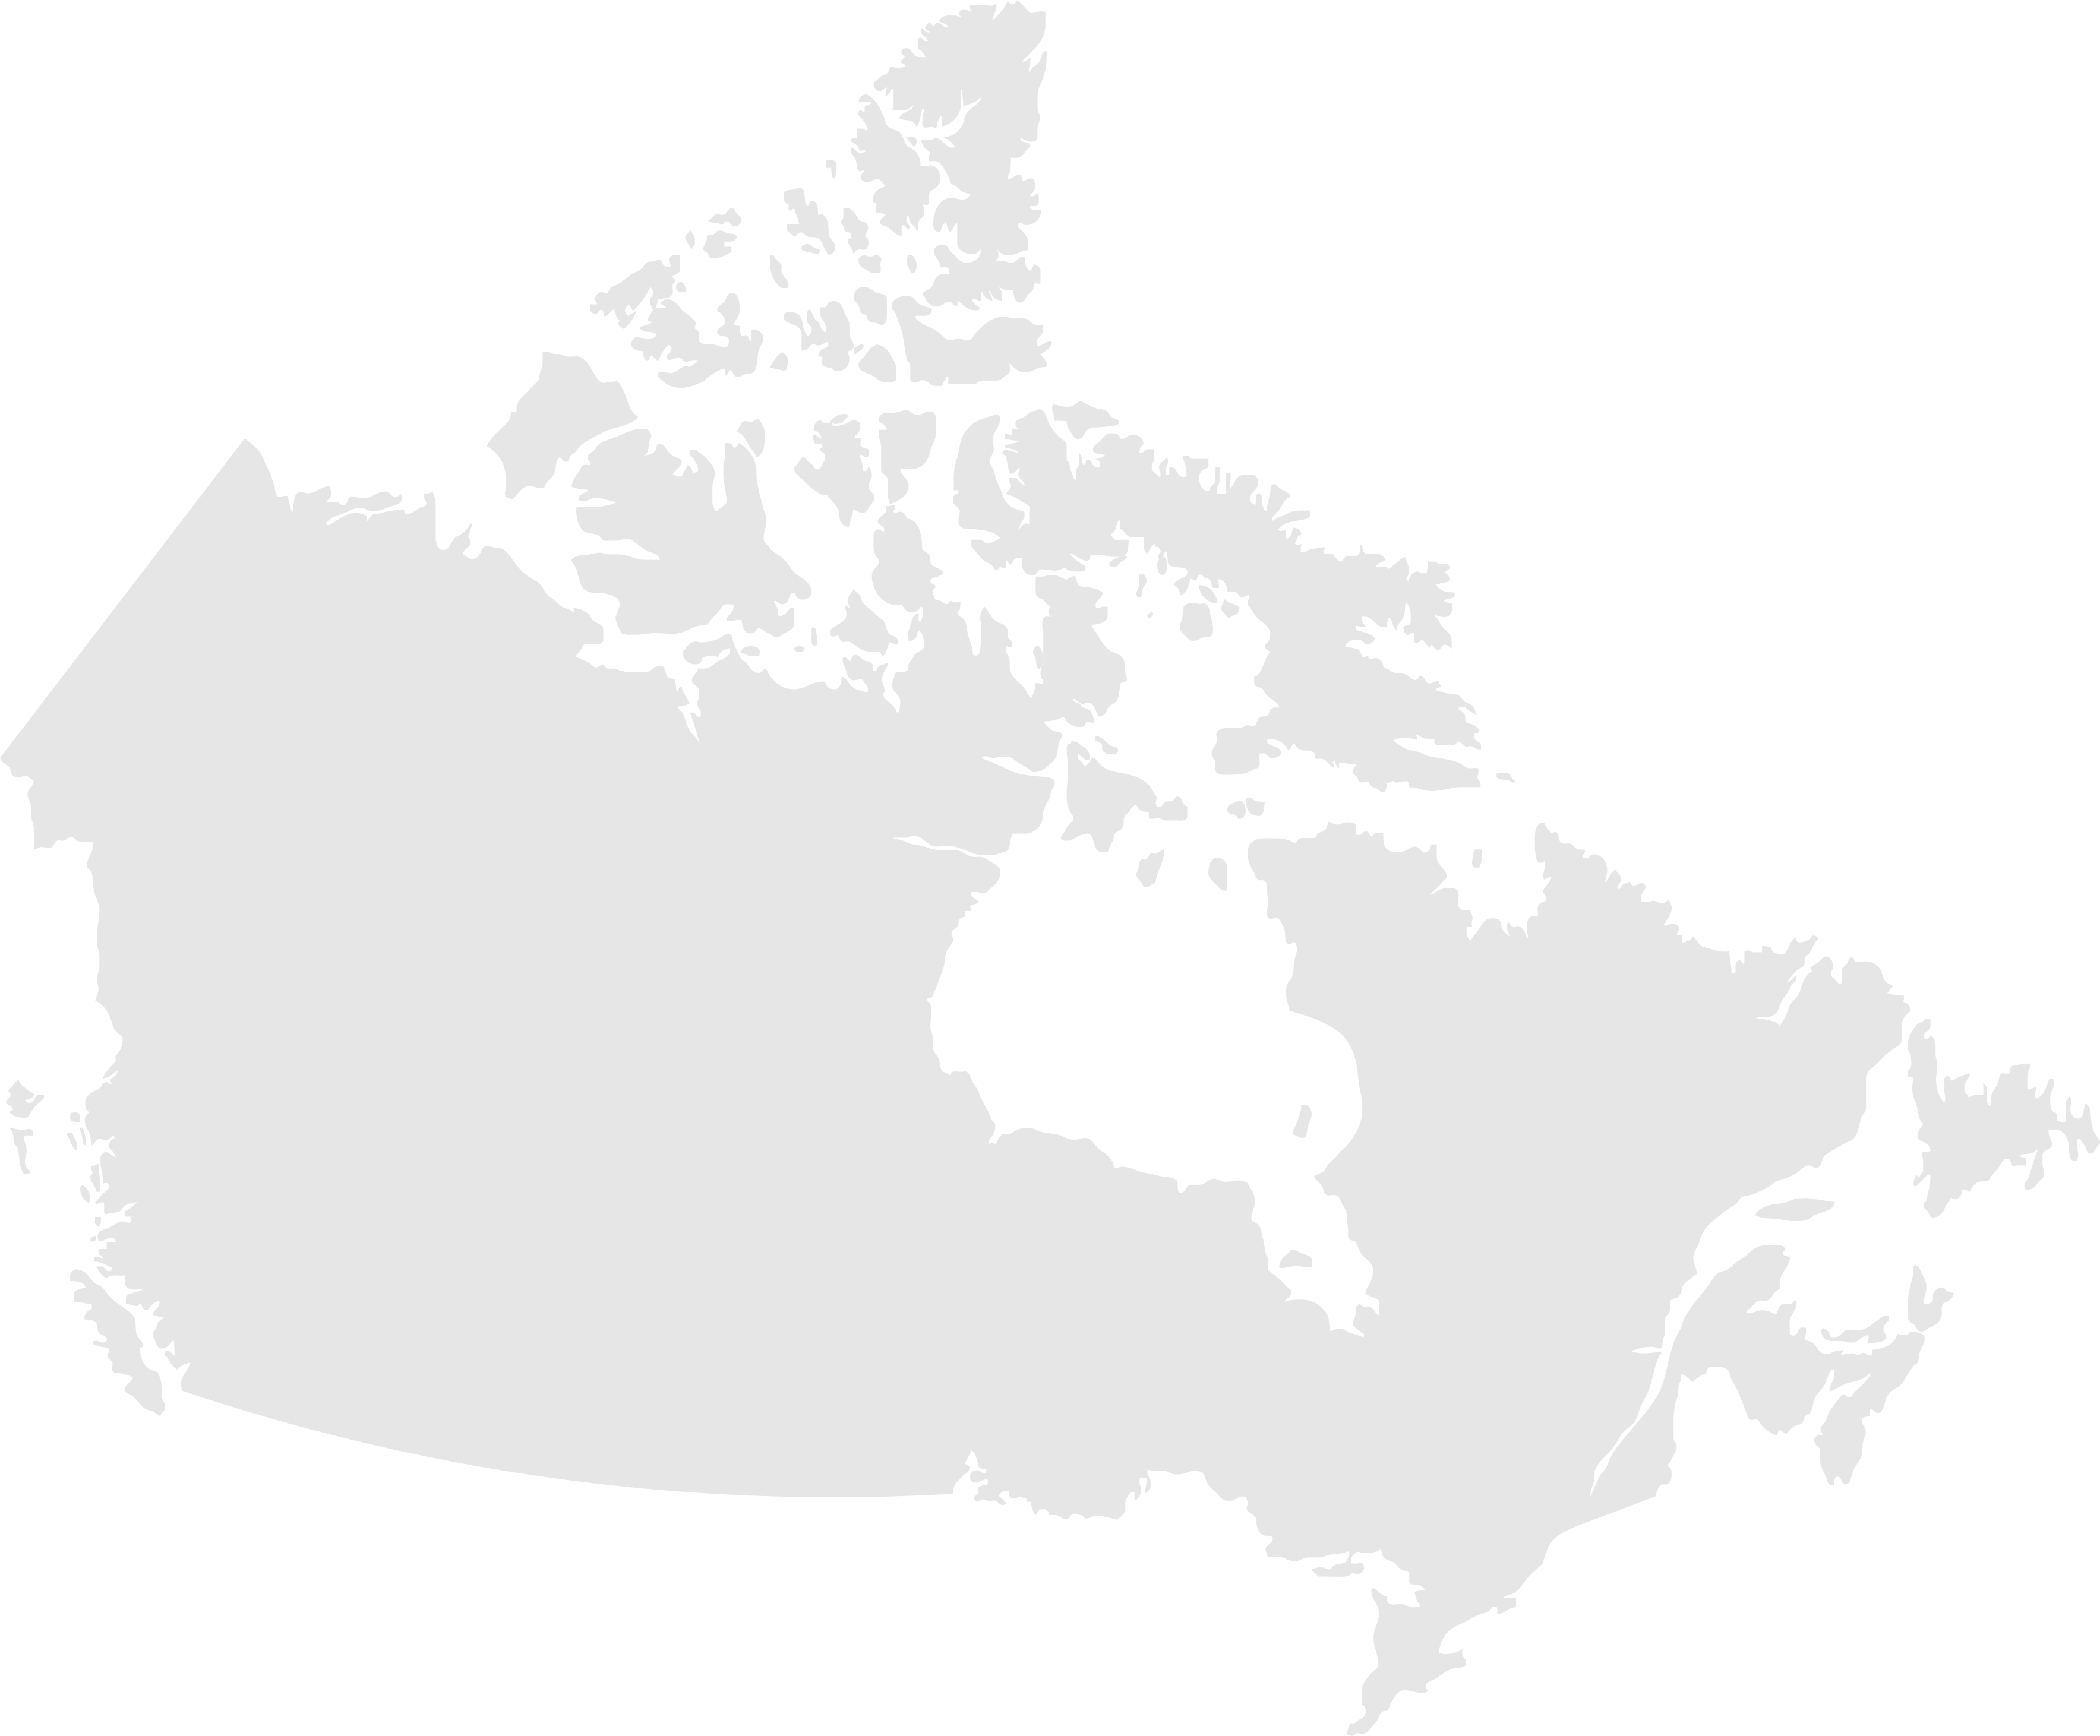 a map of Canada.